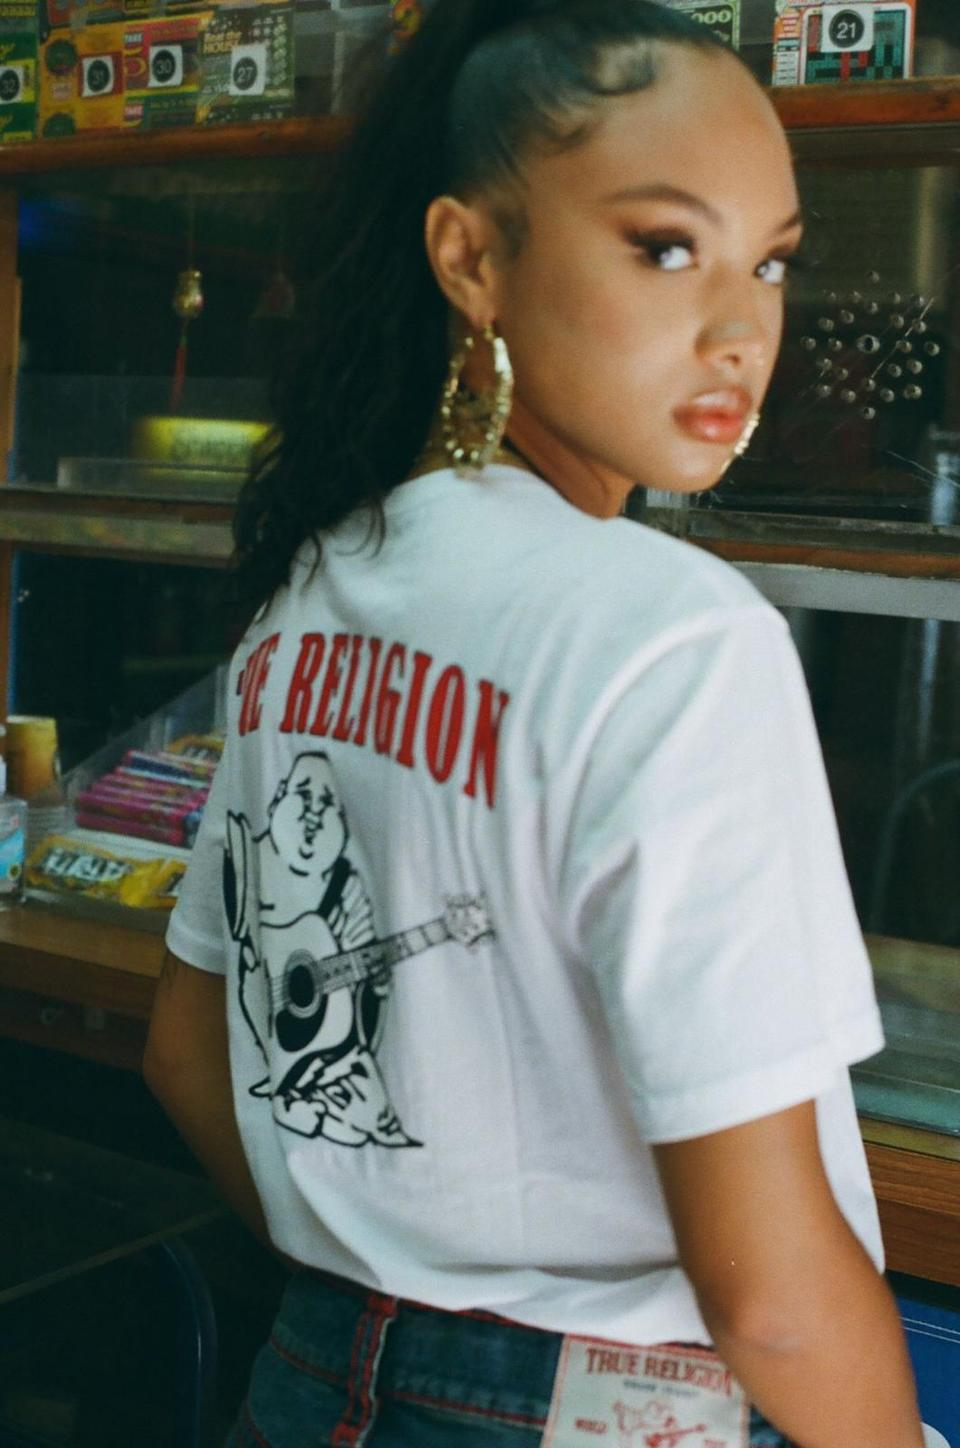 A True Religion T-shirt and jeans.